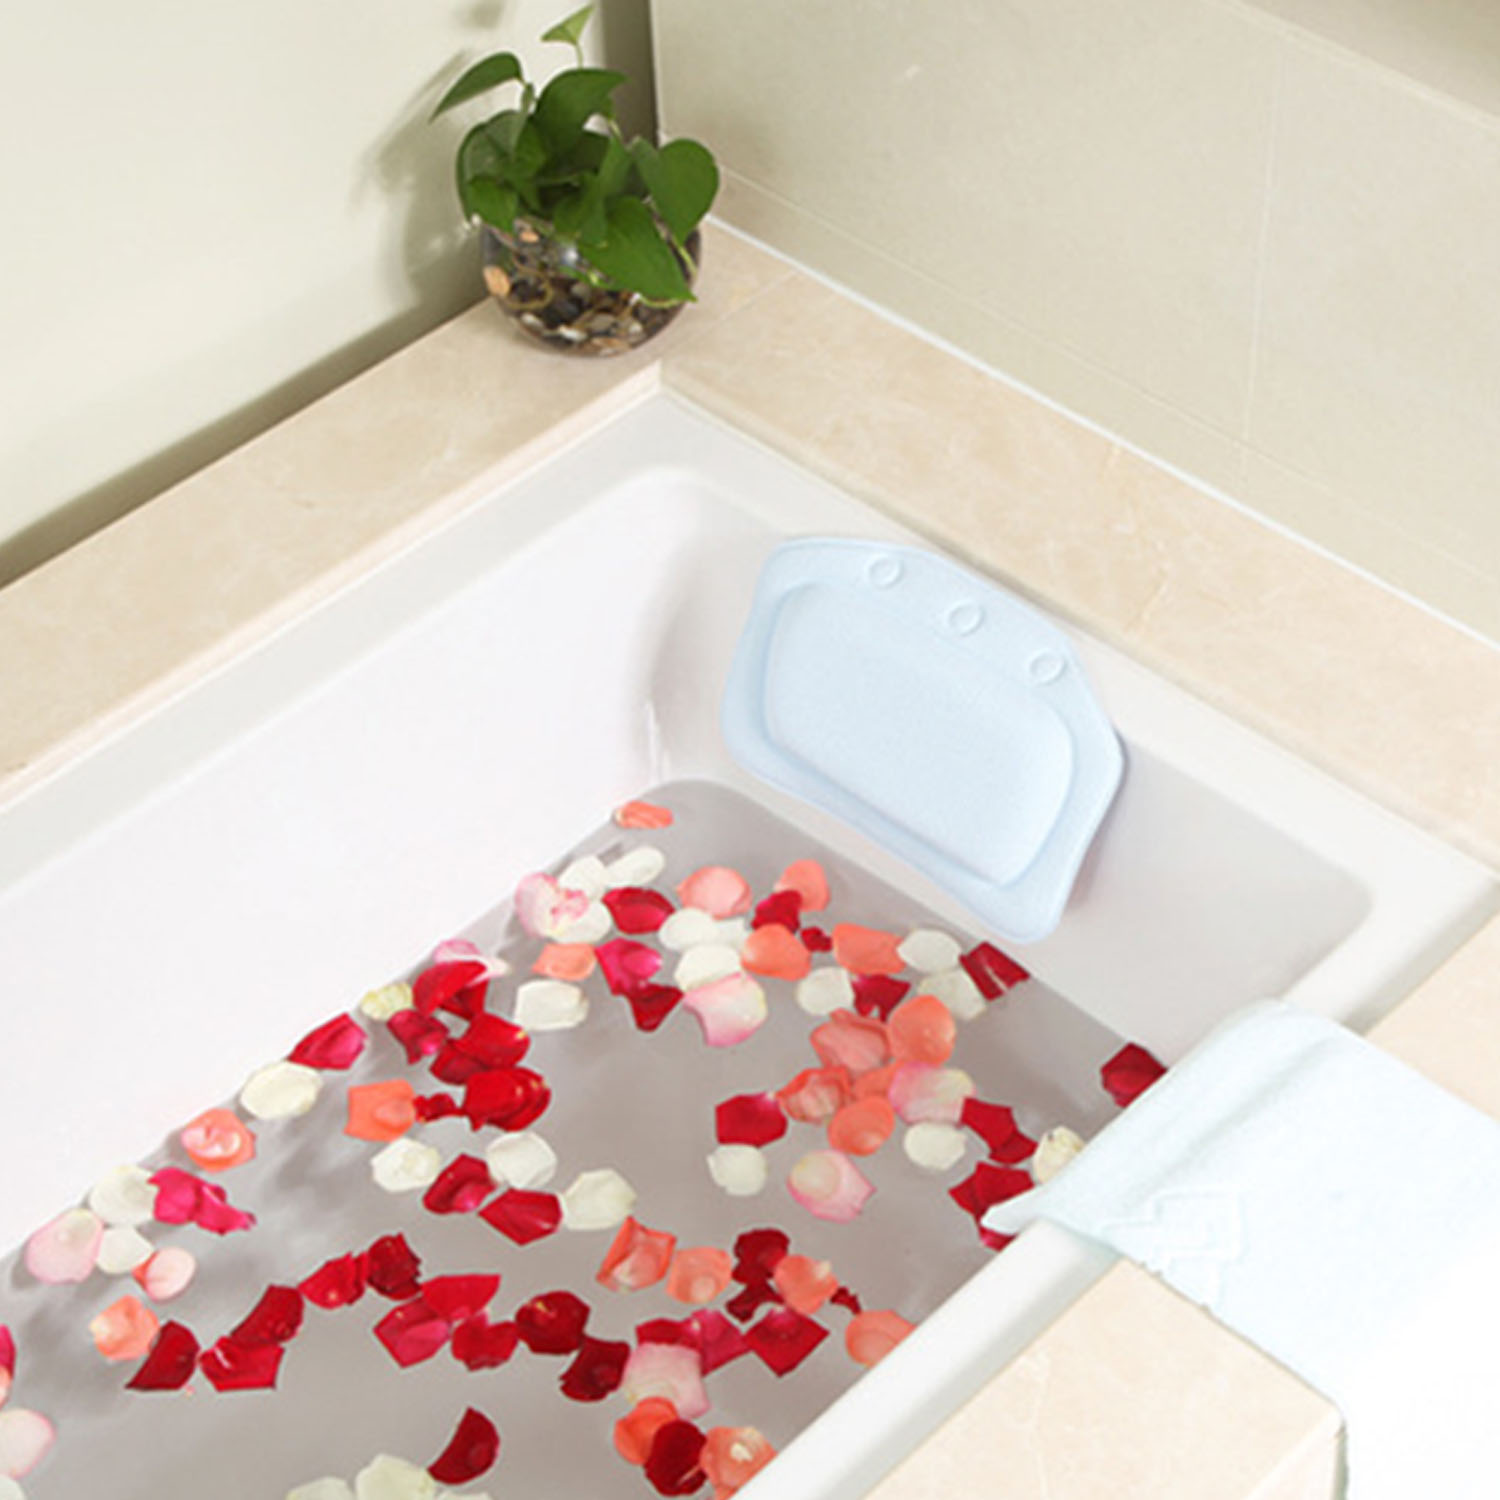 WANPOOL Spa Bathtub Pillow with 3 Strong Suction Cups -Car Mount ...